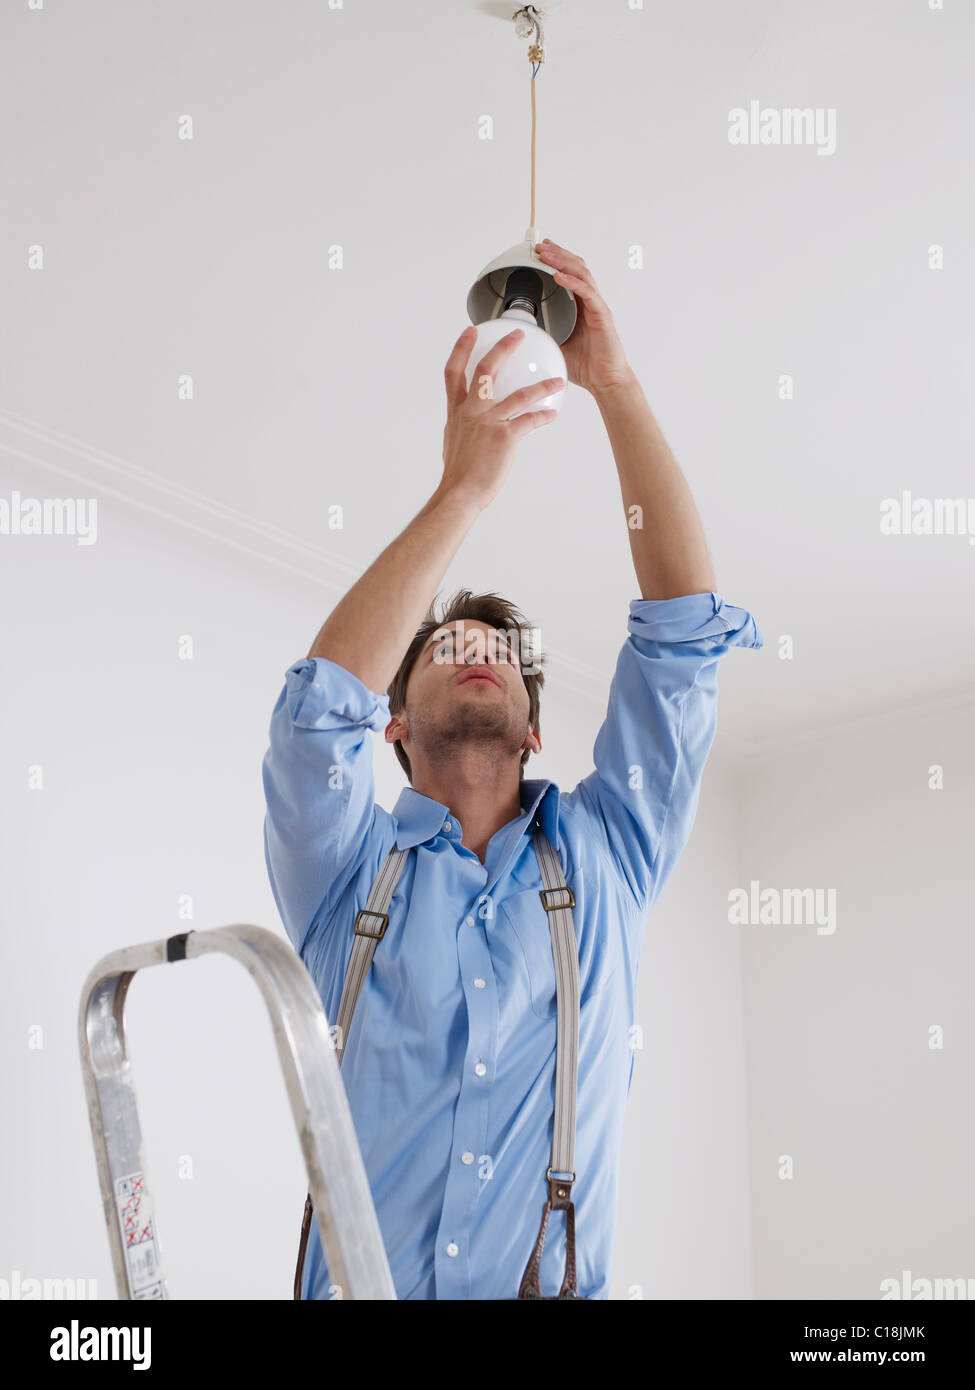 Changing Light Bulb Stock Photos Images Wiring A Young Man On Ladder Screws In Image